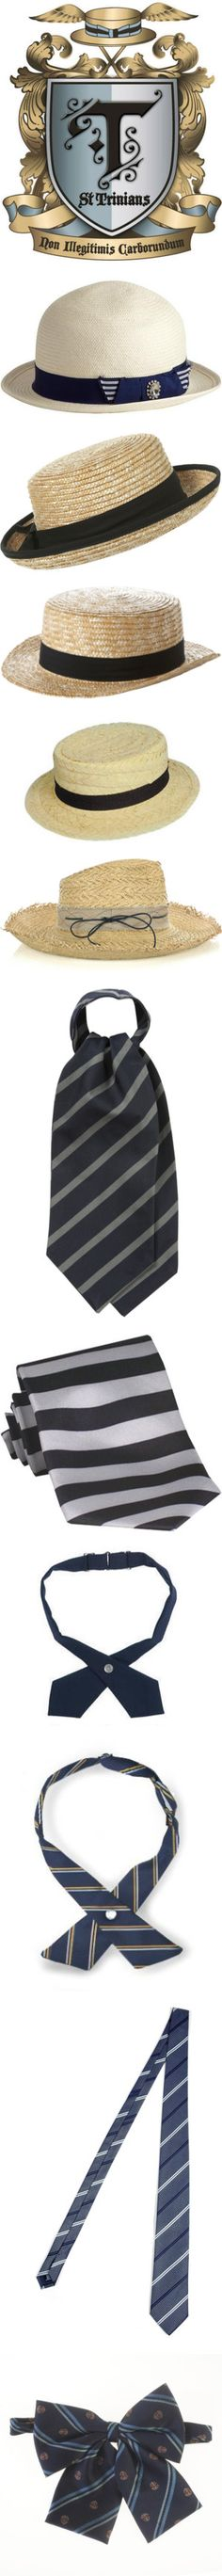 """ST. TRINIAN'S UNIFORM"" by tany ❤ liked on Polyvore"